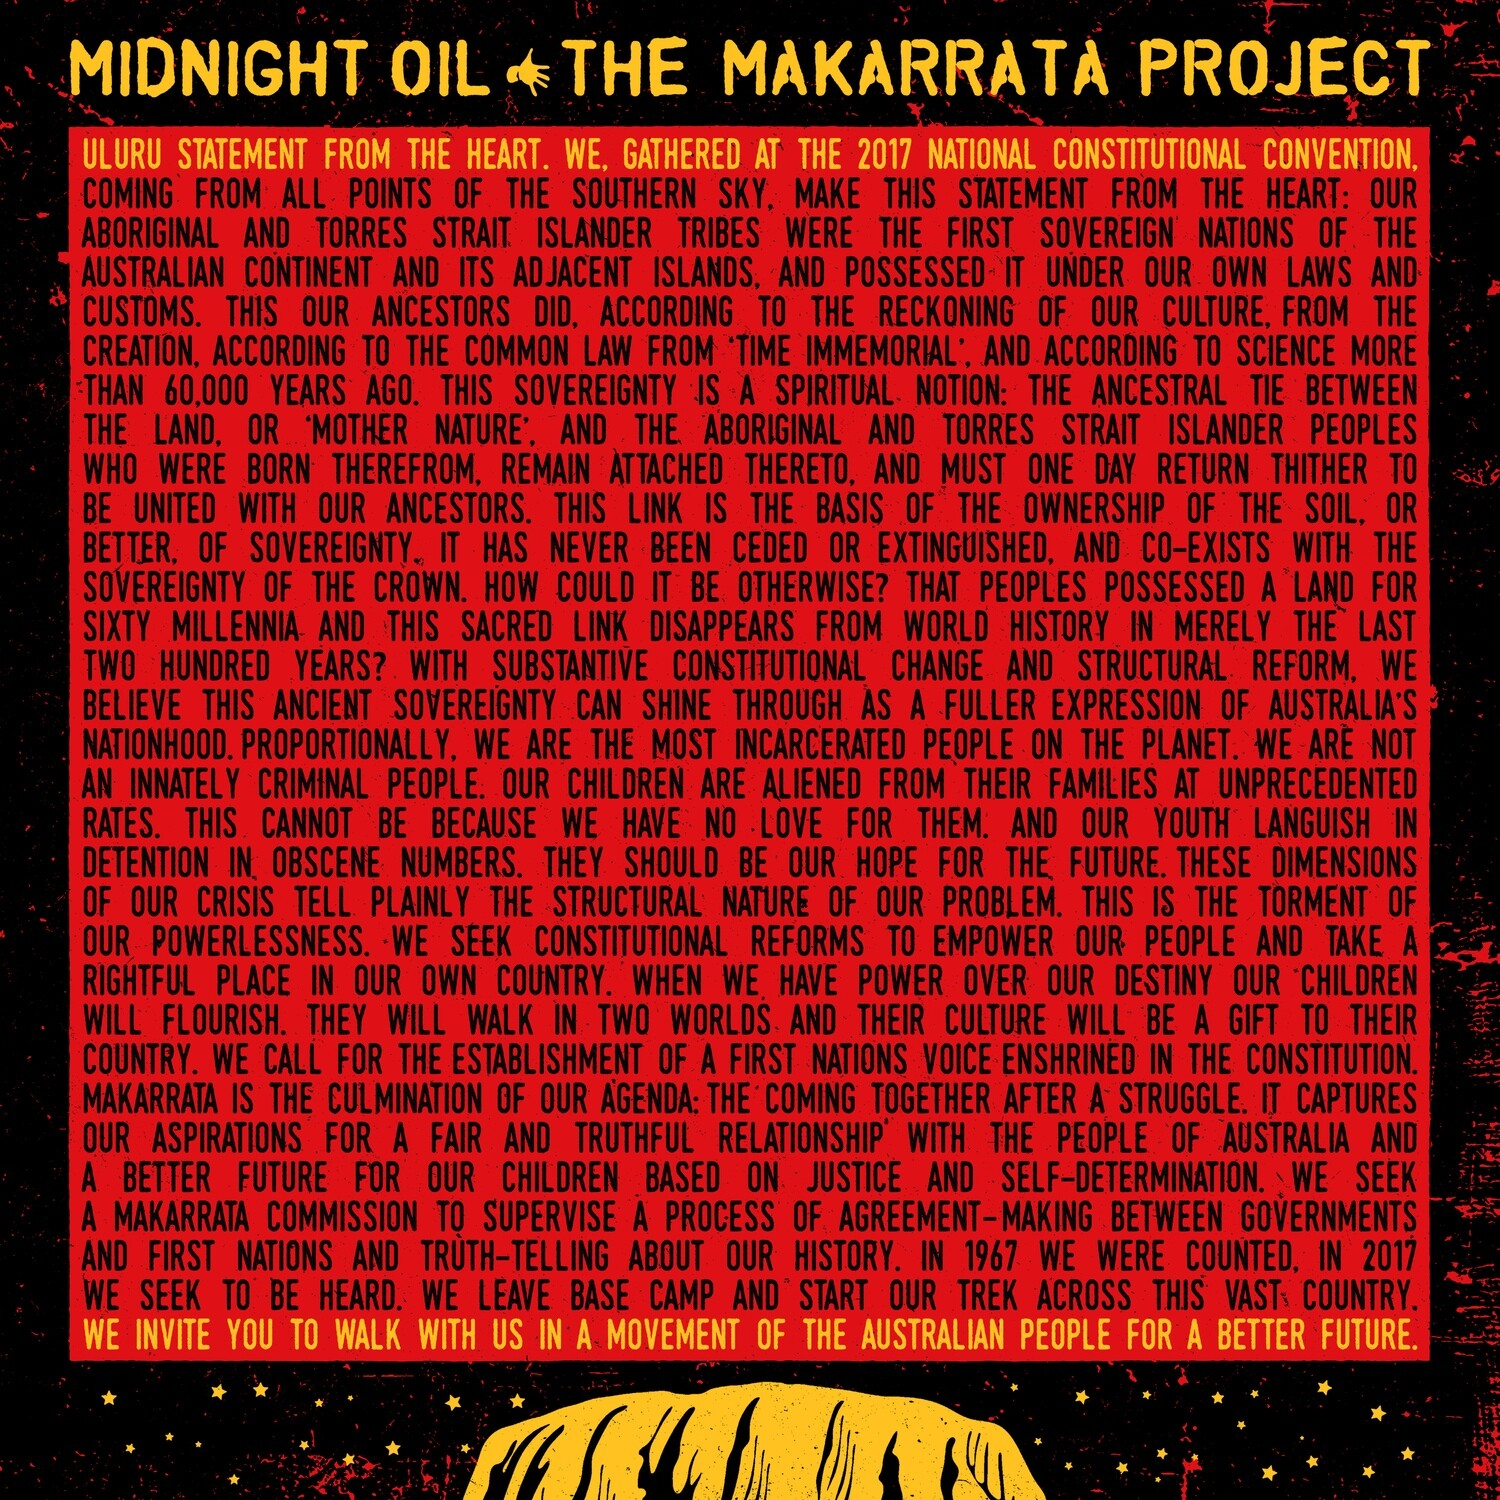 Midnight Oil - The Makarrata Project (Yellow) [LP] PRE-ORDER